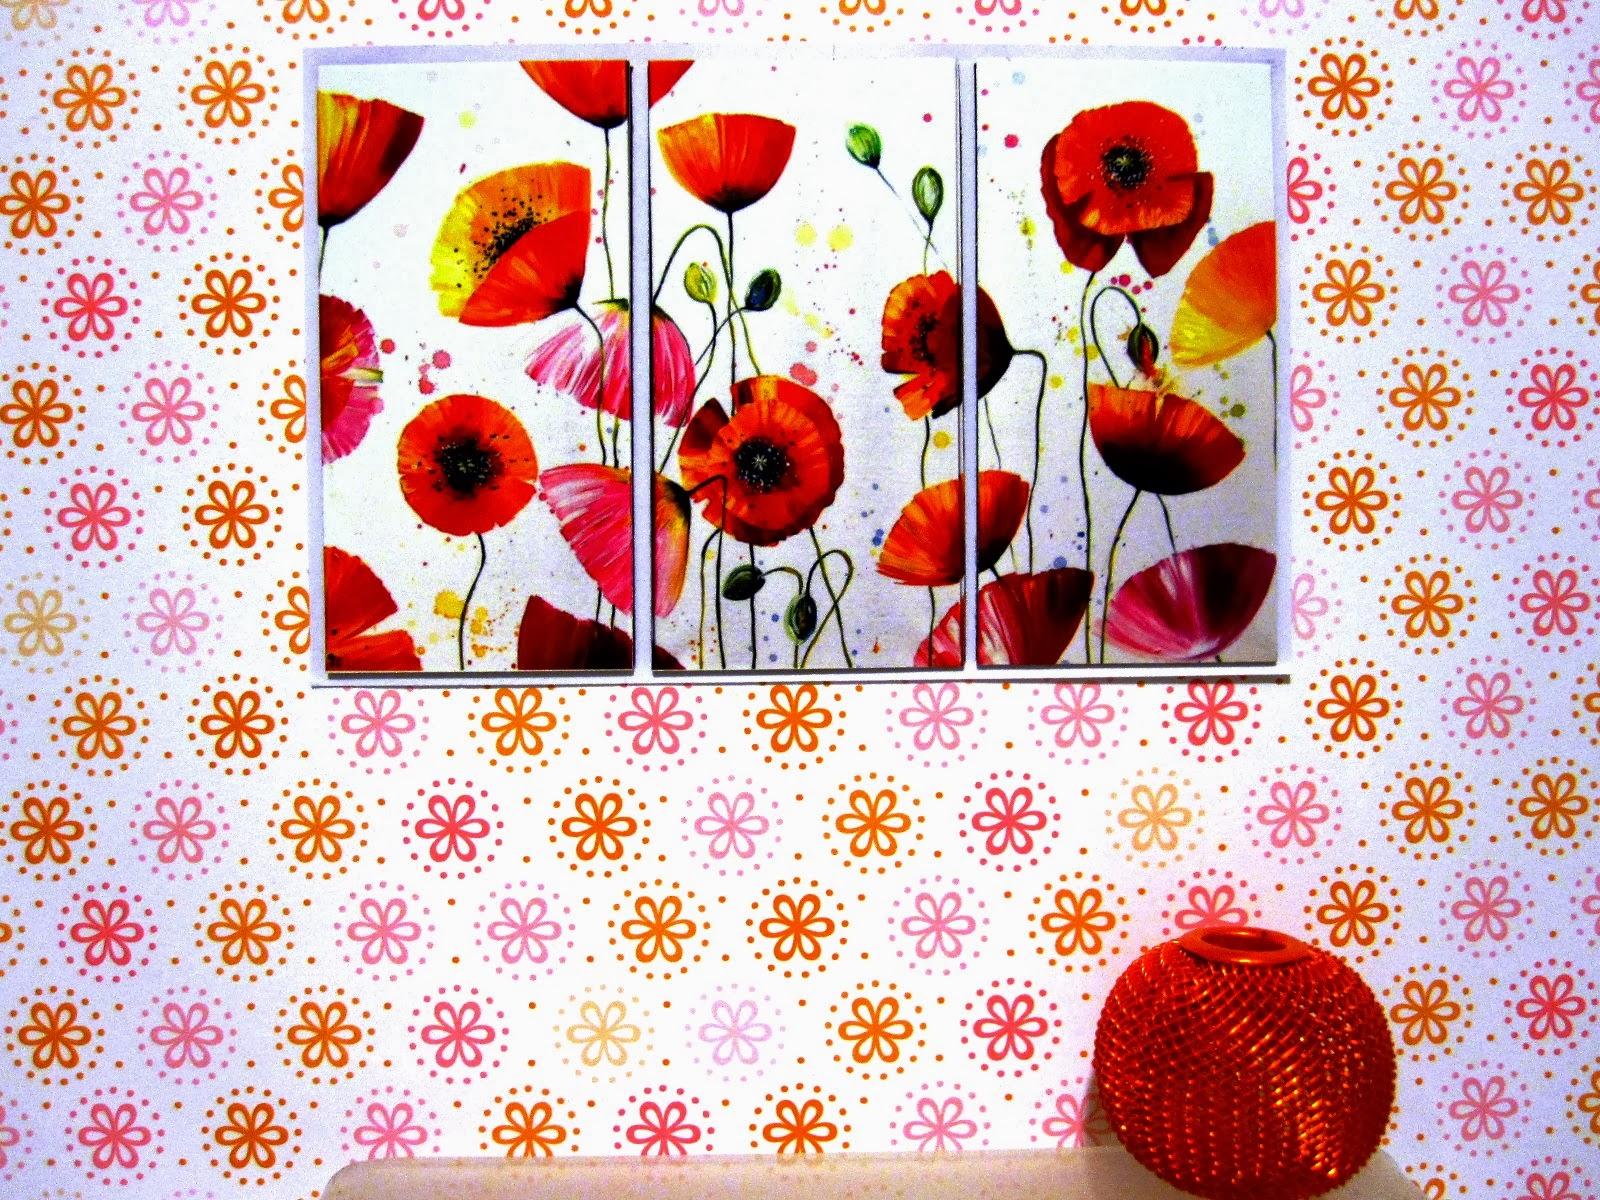 Dolls' house miniature poppy triptych on a wall